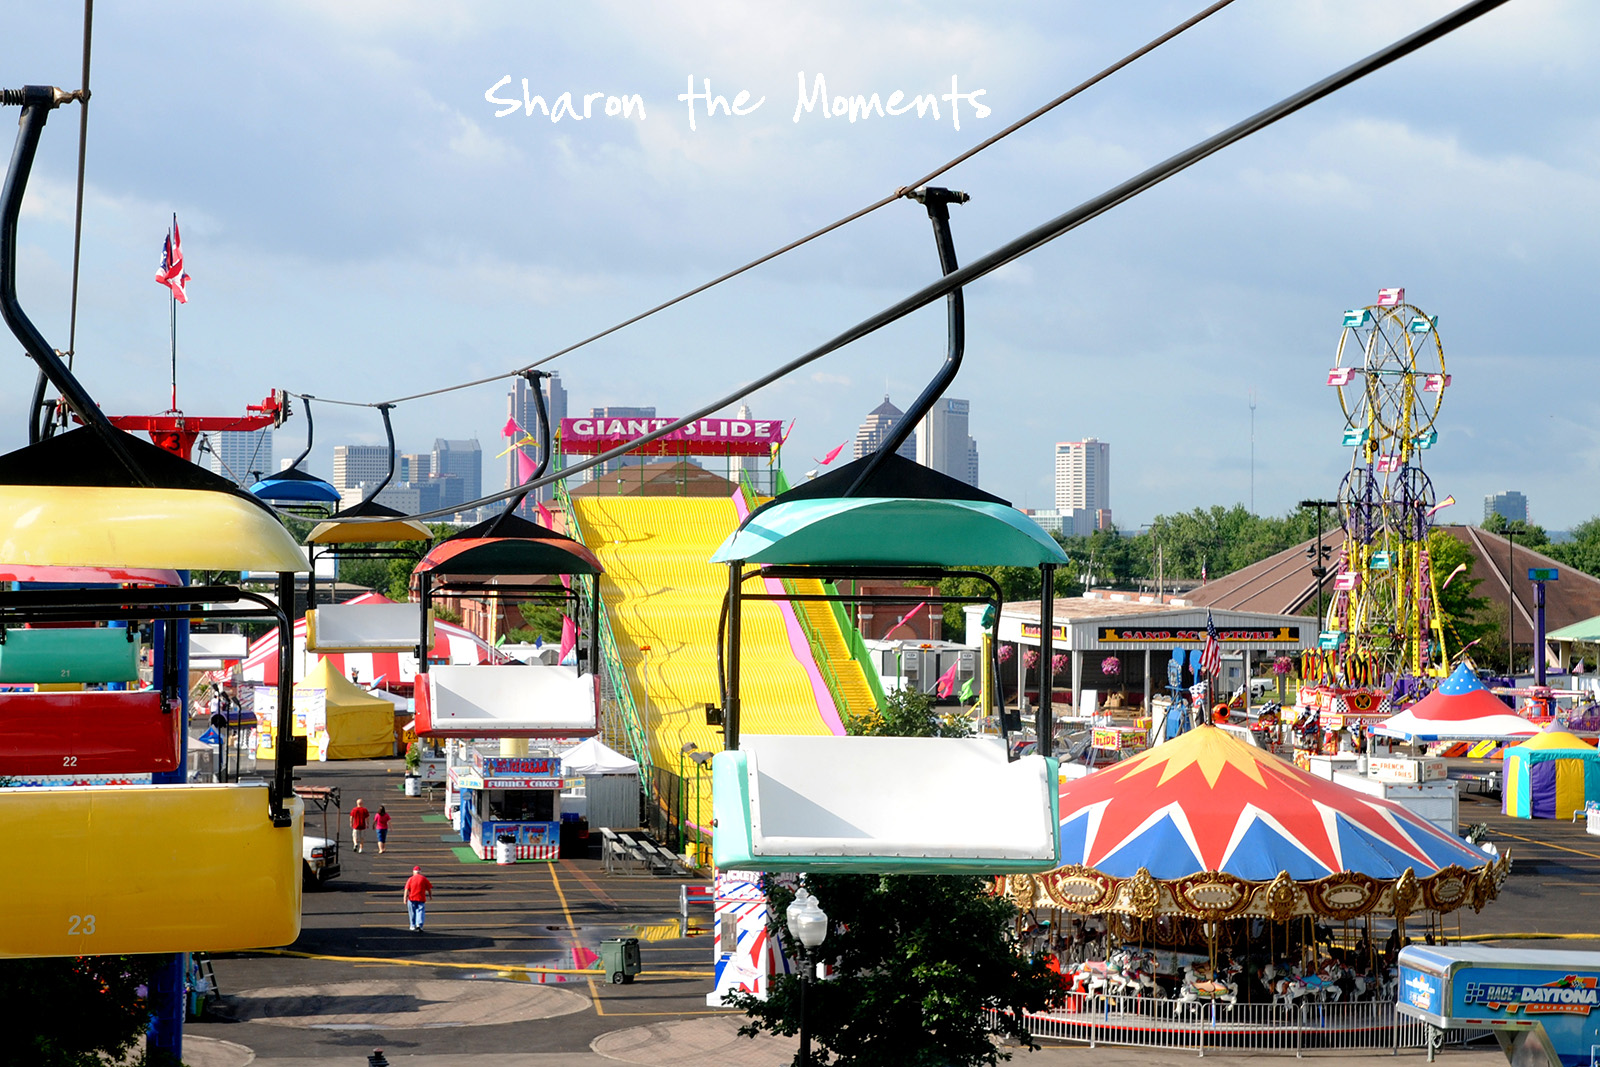 Ohio State Fair Sky Glider Fond Memories|Sharon the Moments blog